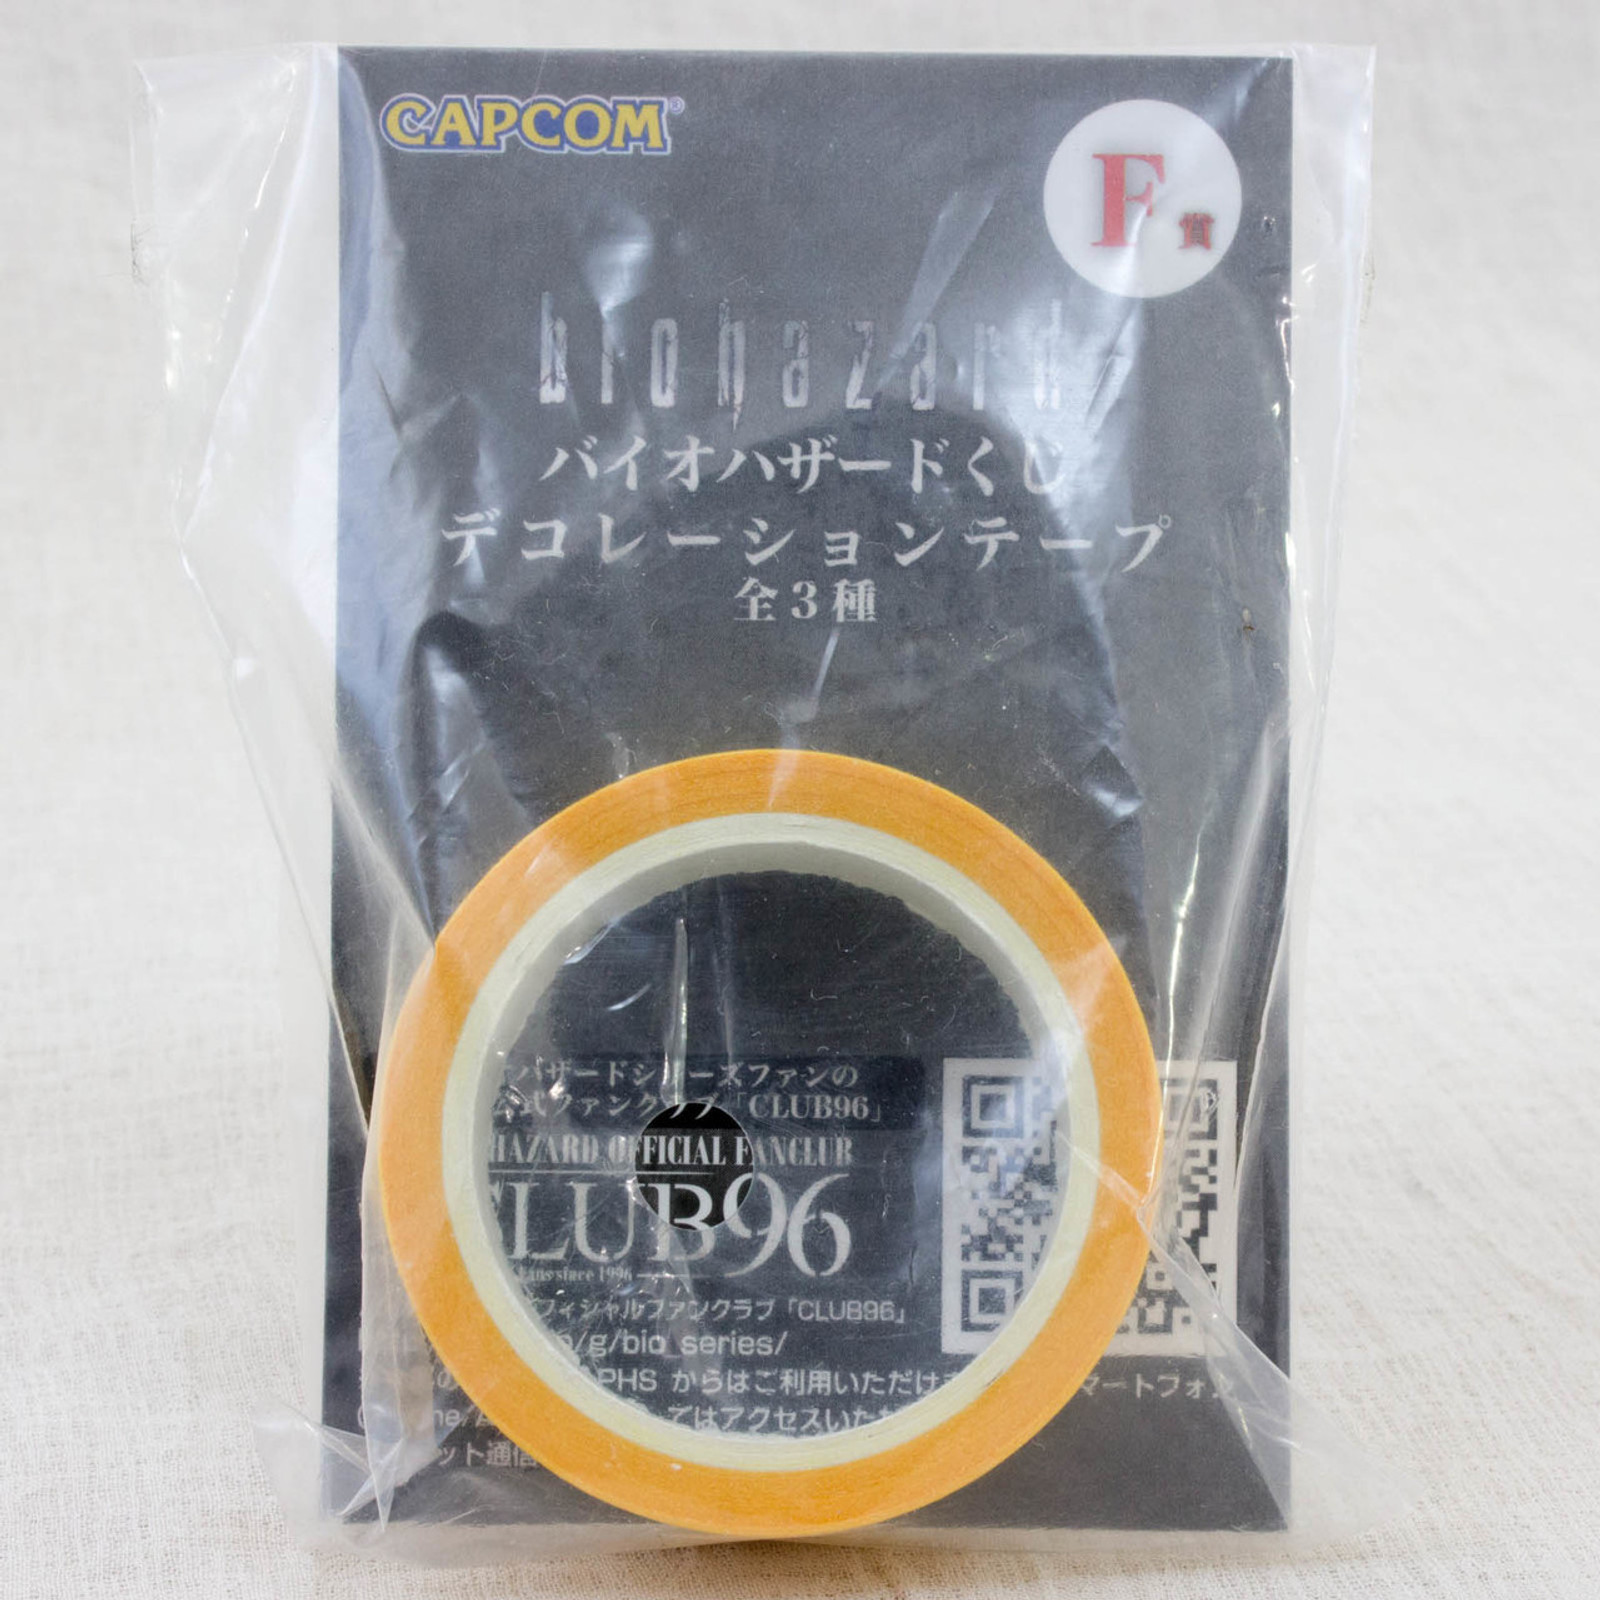 RESIDENT EVIL Biohazard Decoration Tape Yellow Capcom JAPAN GAME